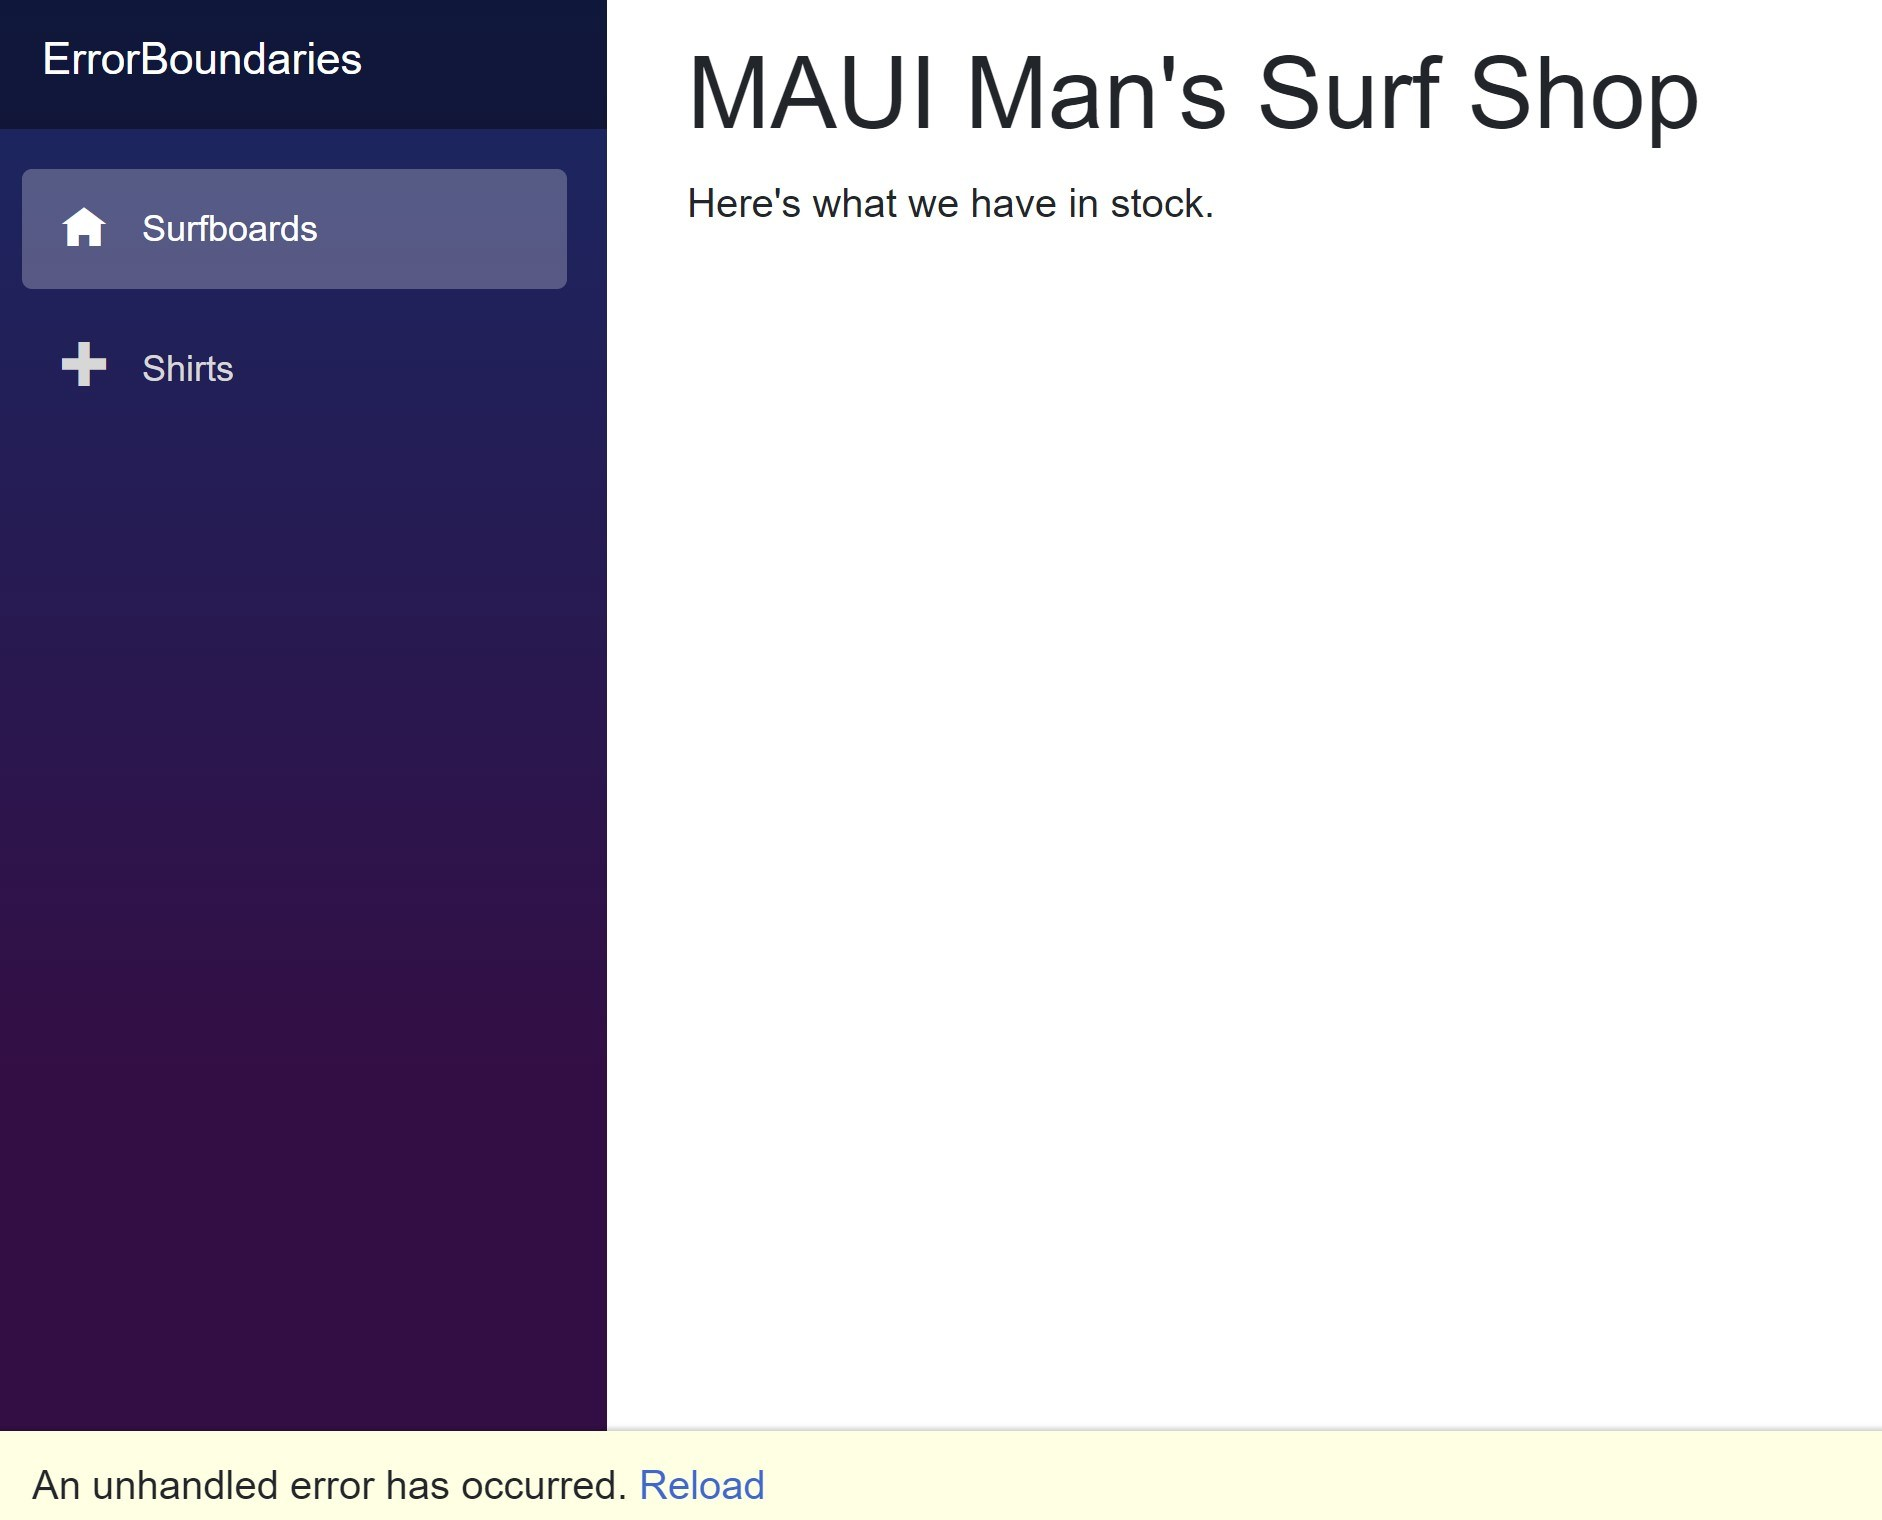 We get the standard error message again—an unhandled error has occurred—on the bottom of our MAUI Man's Surf Shop, which still shows, 'Here's what we have in stock,' but no list of surfboards.